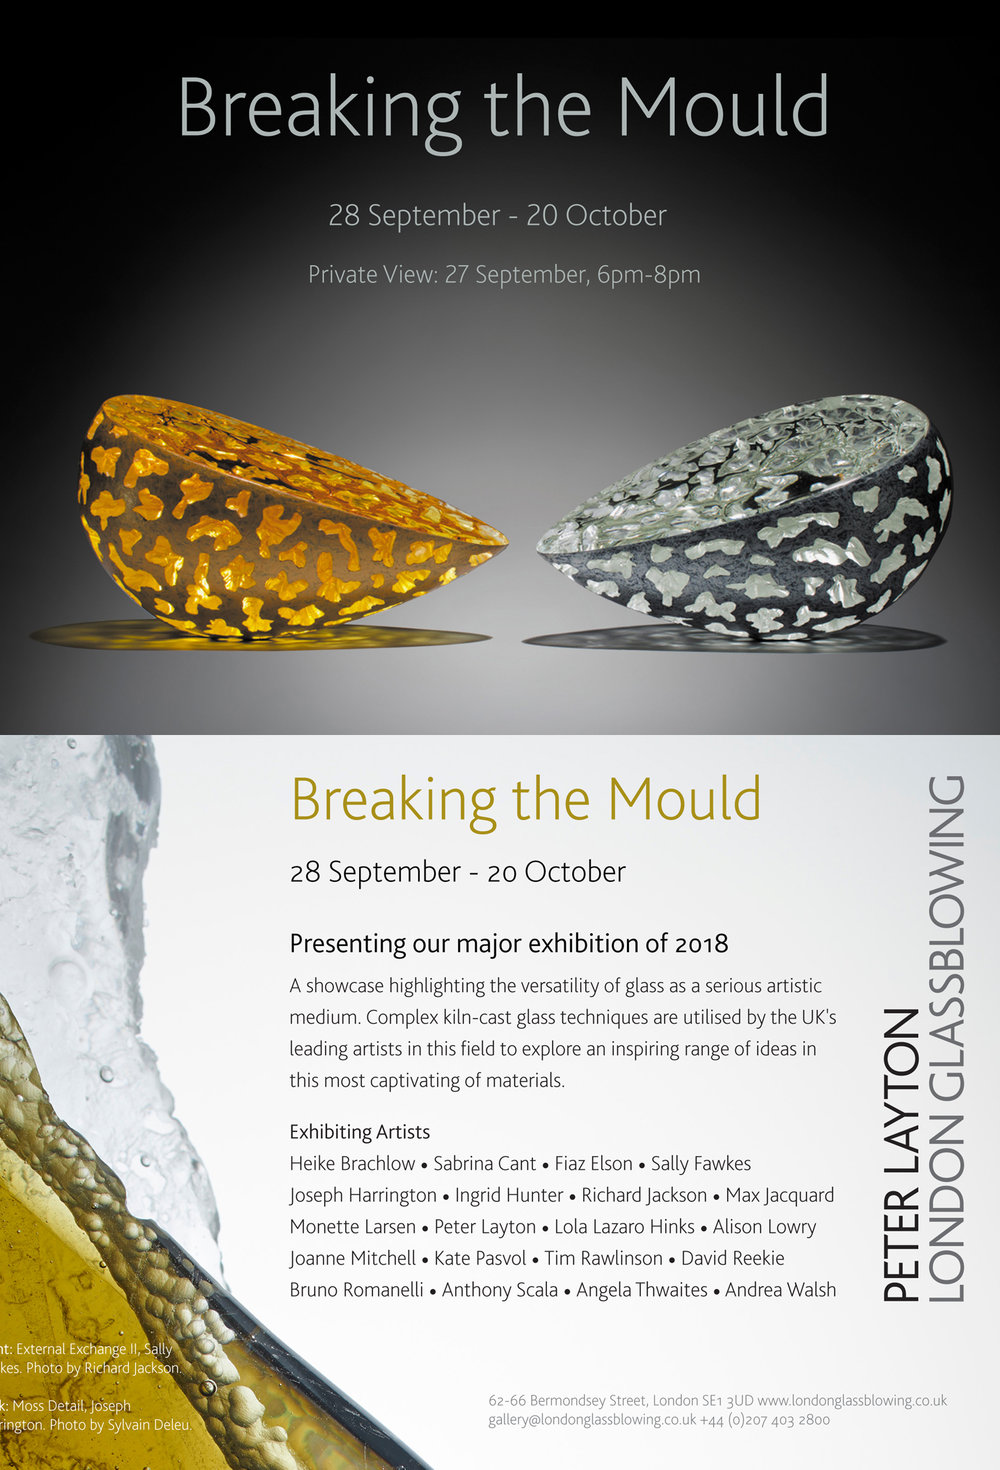 Breaking the Mould PV Invitation.jpg